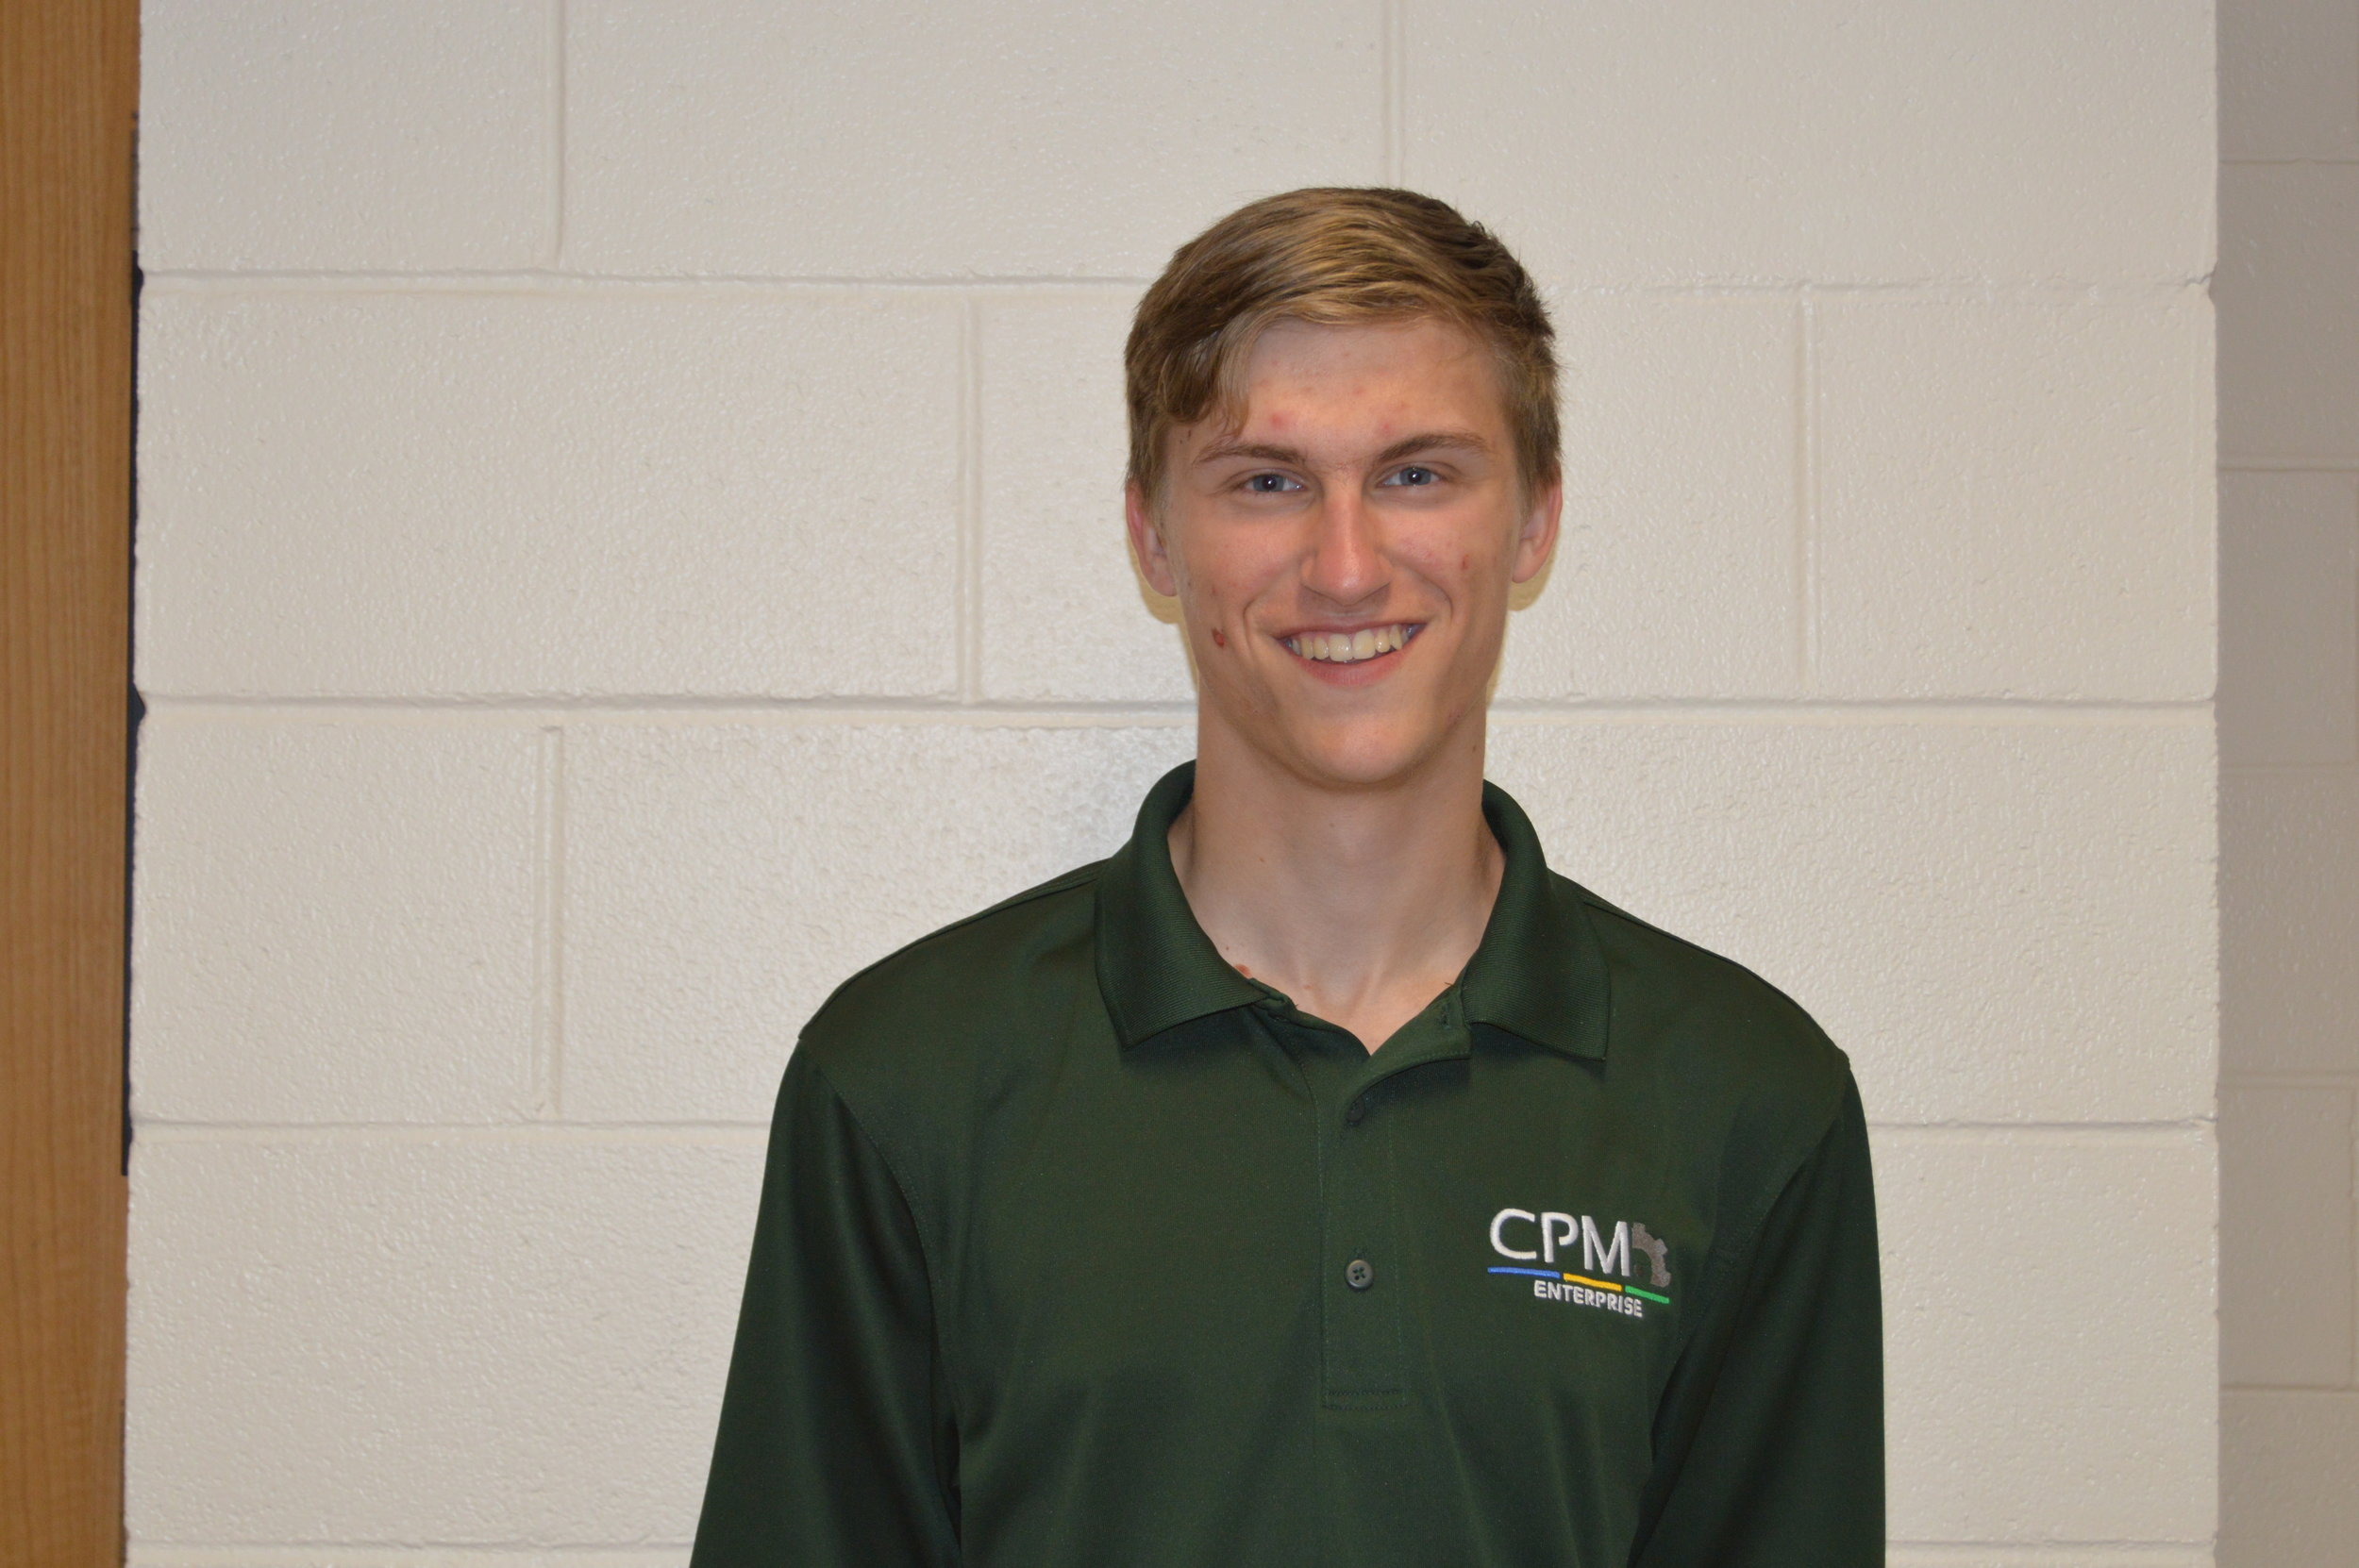 Joshua Sabrowsky - My name is Joshua Sabrowsky and I am the Yanfeng Ultrasonic Welding Optimization Team Lead for the 2018-2019 year. This is my second semester on CPM and I also hold the Safety Officer position on E-Board. I am in my third year at Michigan Tech pursuing my bachelor's in Chemical Engineering. Originally, I am from Kiel Wisconsin but this past summer I gained industry experience working as a Paint Engineer at Yanfeng Automotive Interiors on an internship in Holland Michigan. My favorite thing to do here at Tech is go to hockey games, Go Huskies!